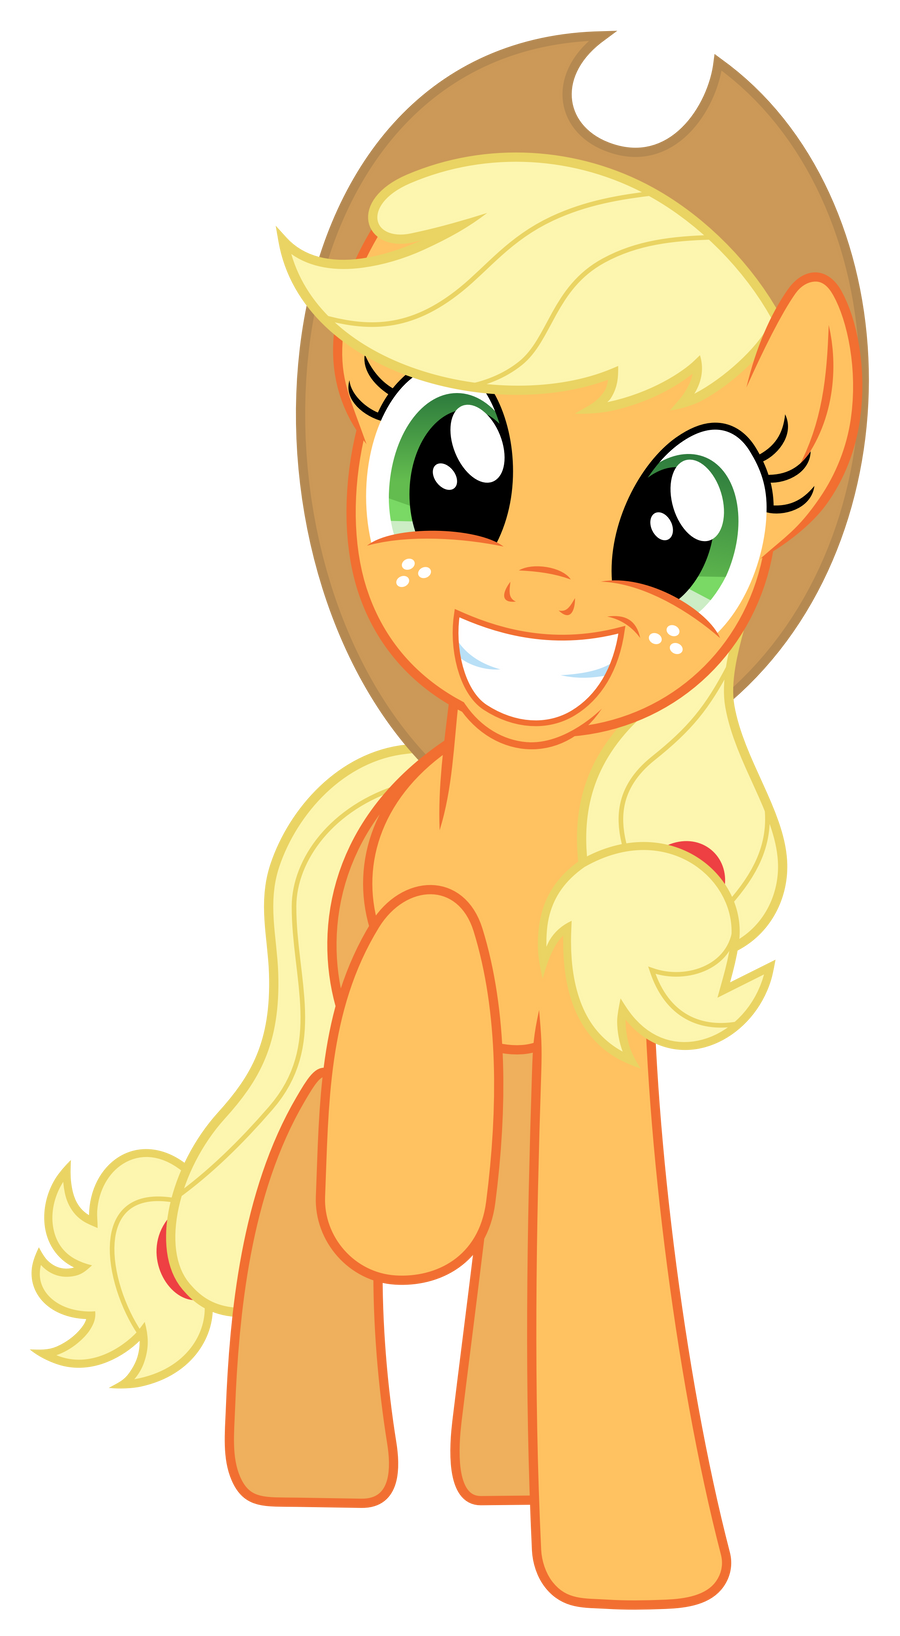 MLP: Very happy (and adorable) Applejack